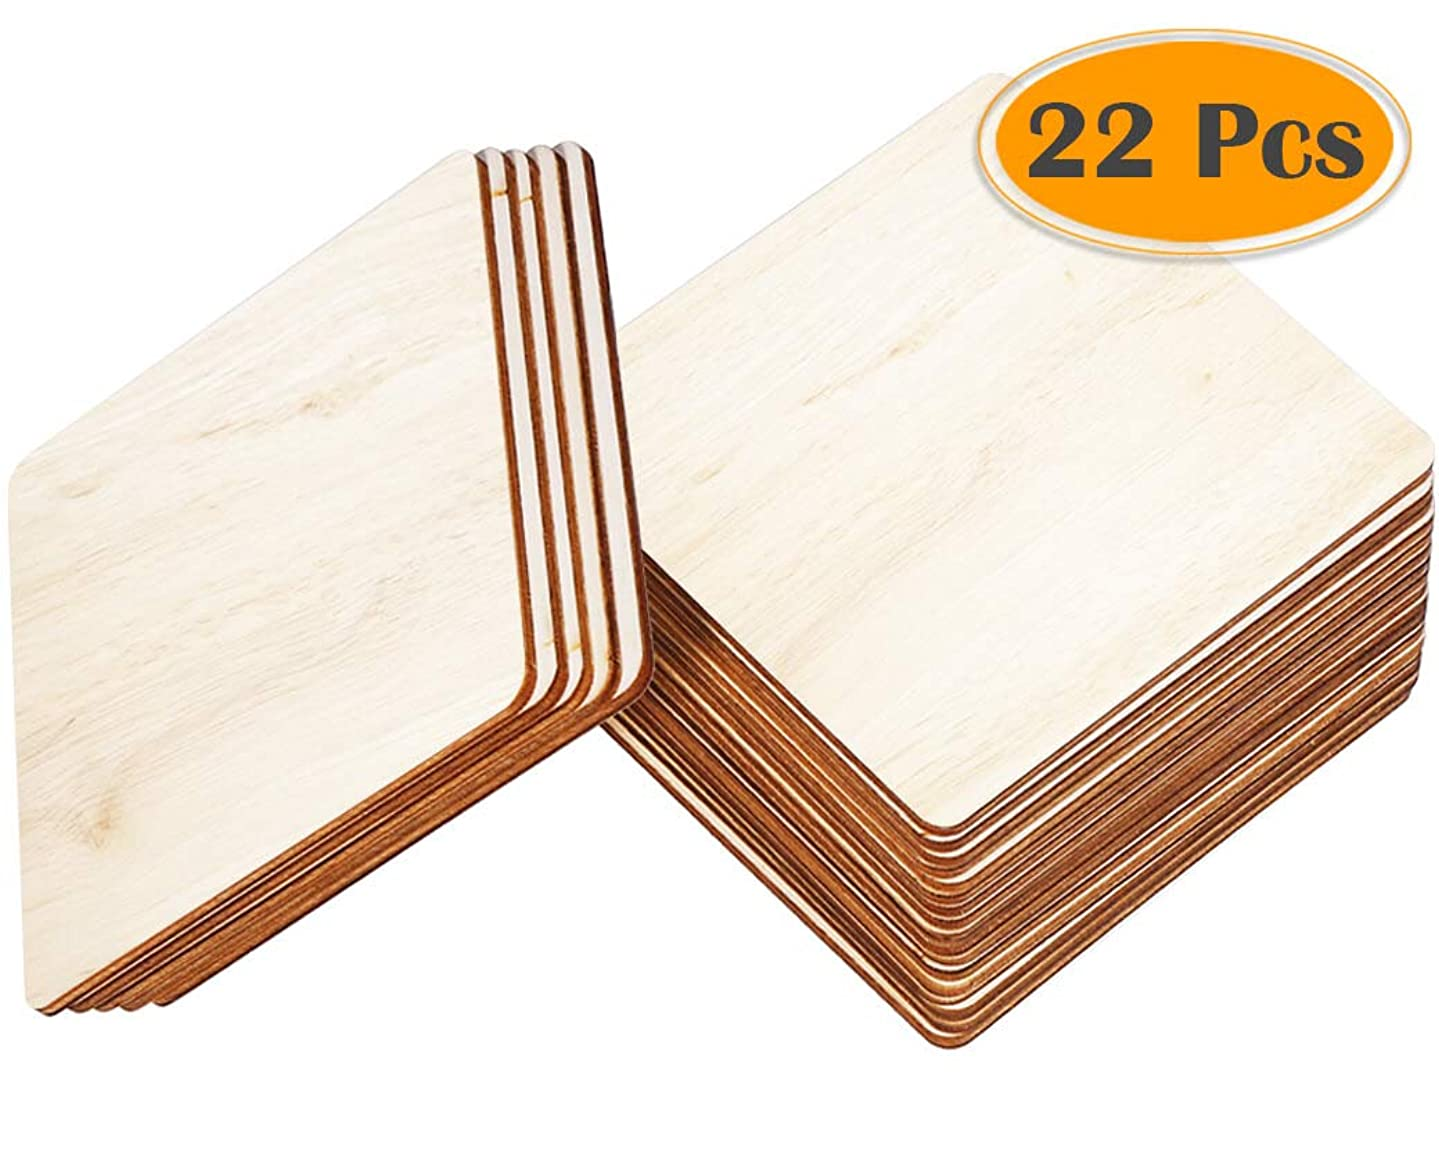 Selizo 22Pcs 4 Inch Unfinished Blank Wood Pieces Wooden Slices Unfinished Wood Cutouts for Wood Burning Carbon Transfer Paper Project Wood Painting Carving